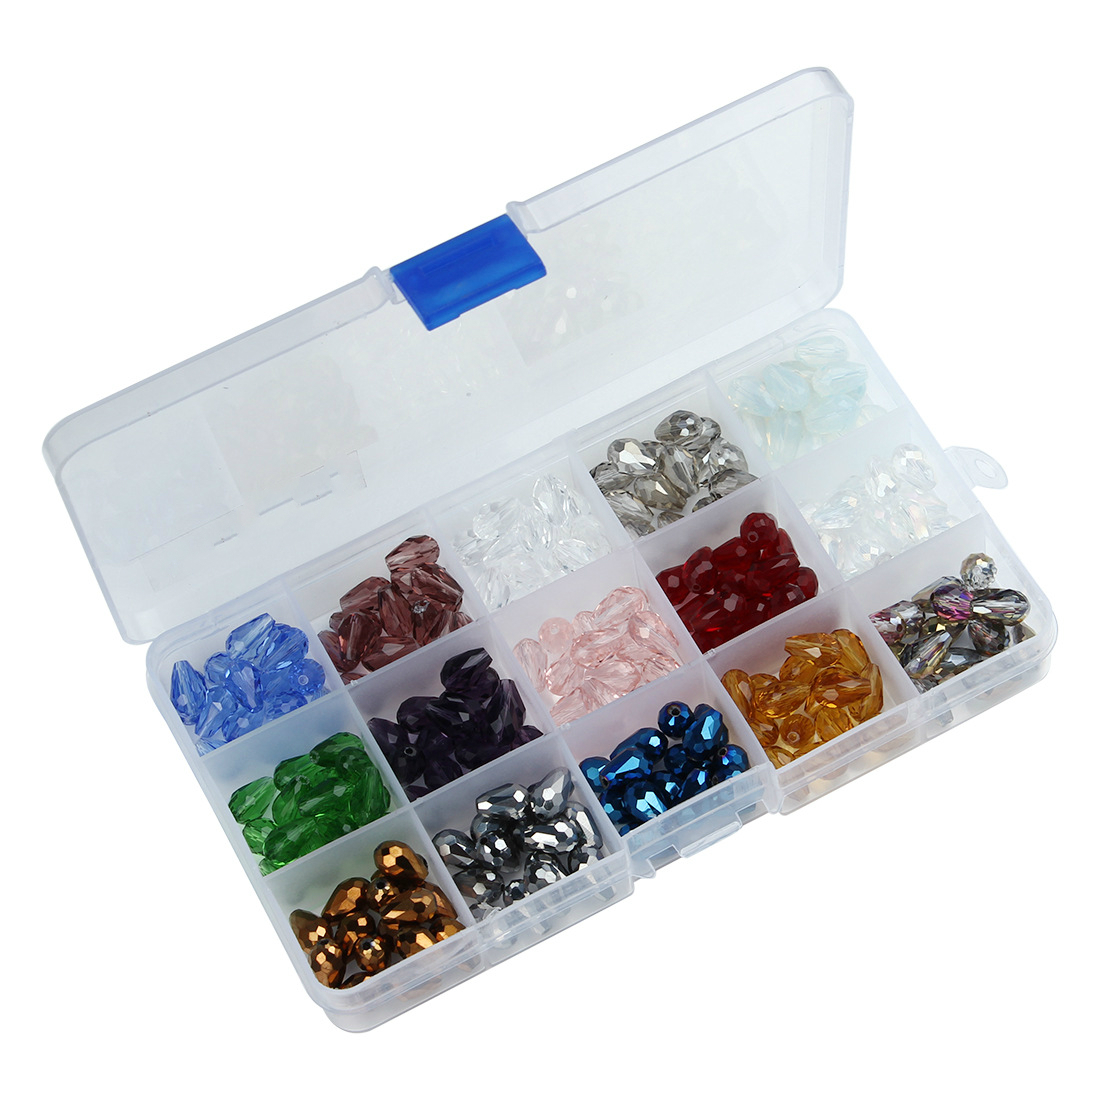 1 Box (225PCs) Multicolor Tear Drop Crystal Glass Loose Beads Faceted DIY Components 8x12mm (15 Colors)